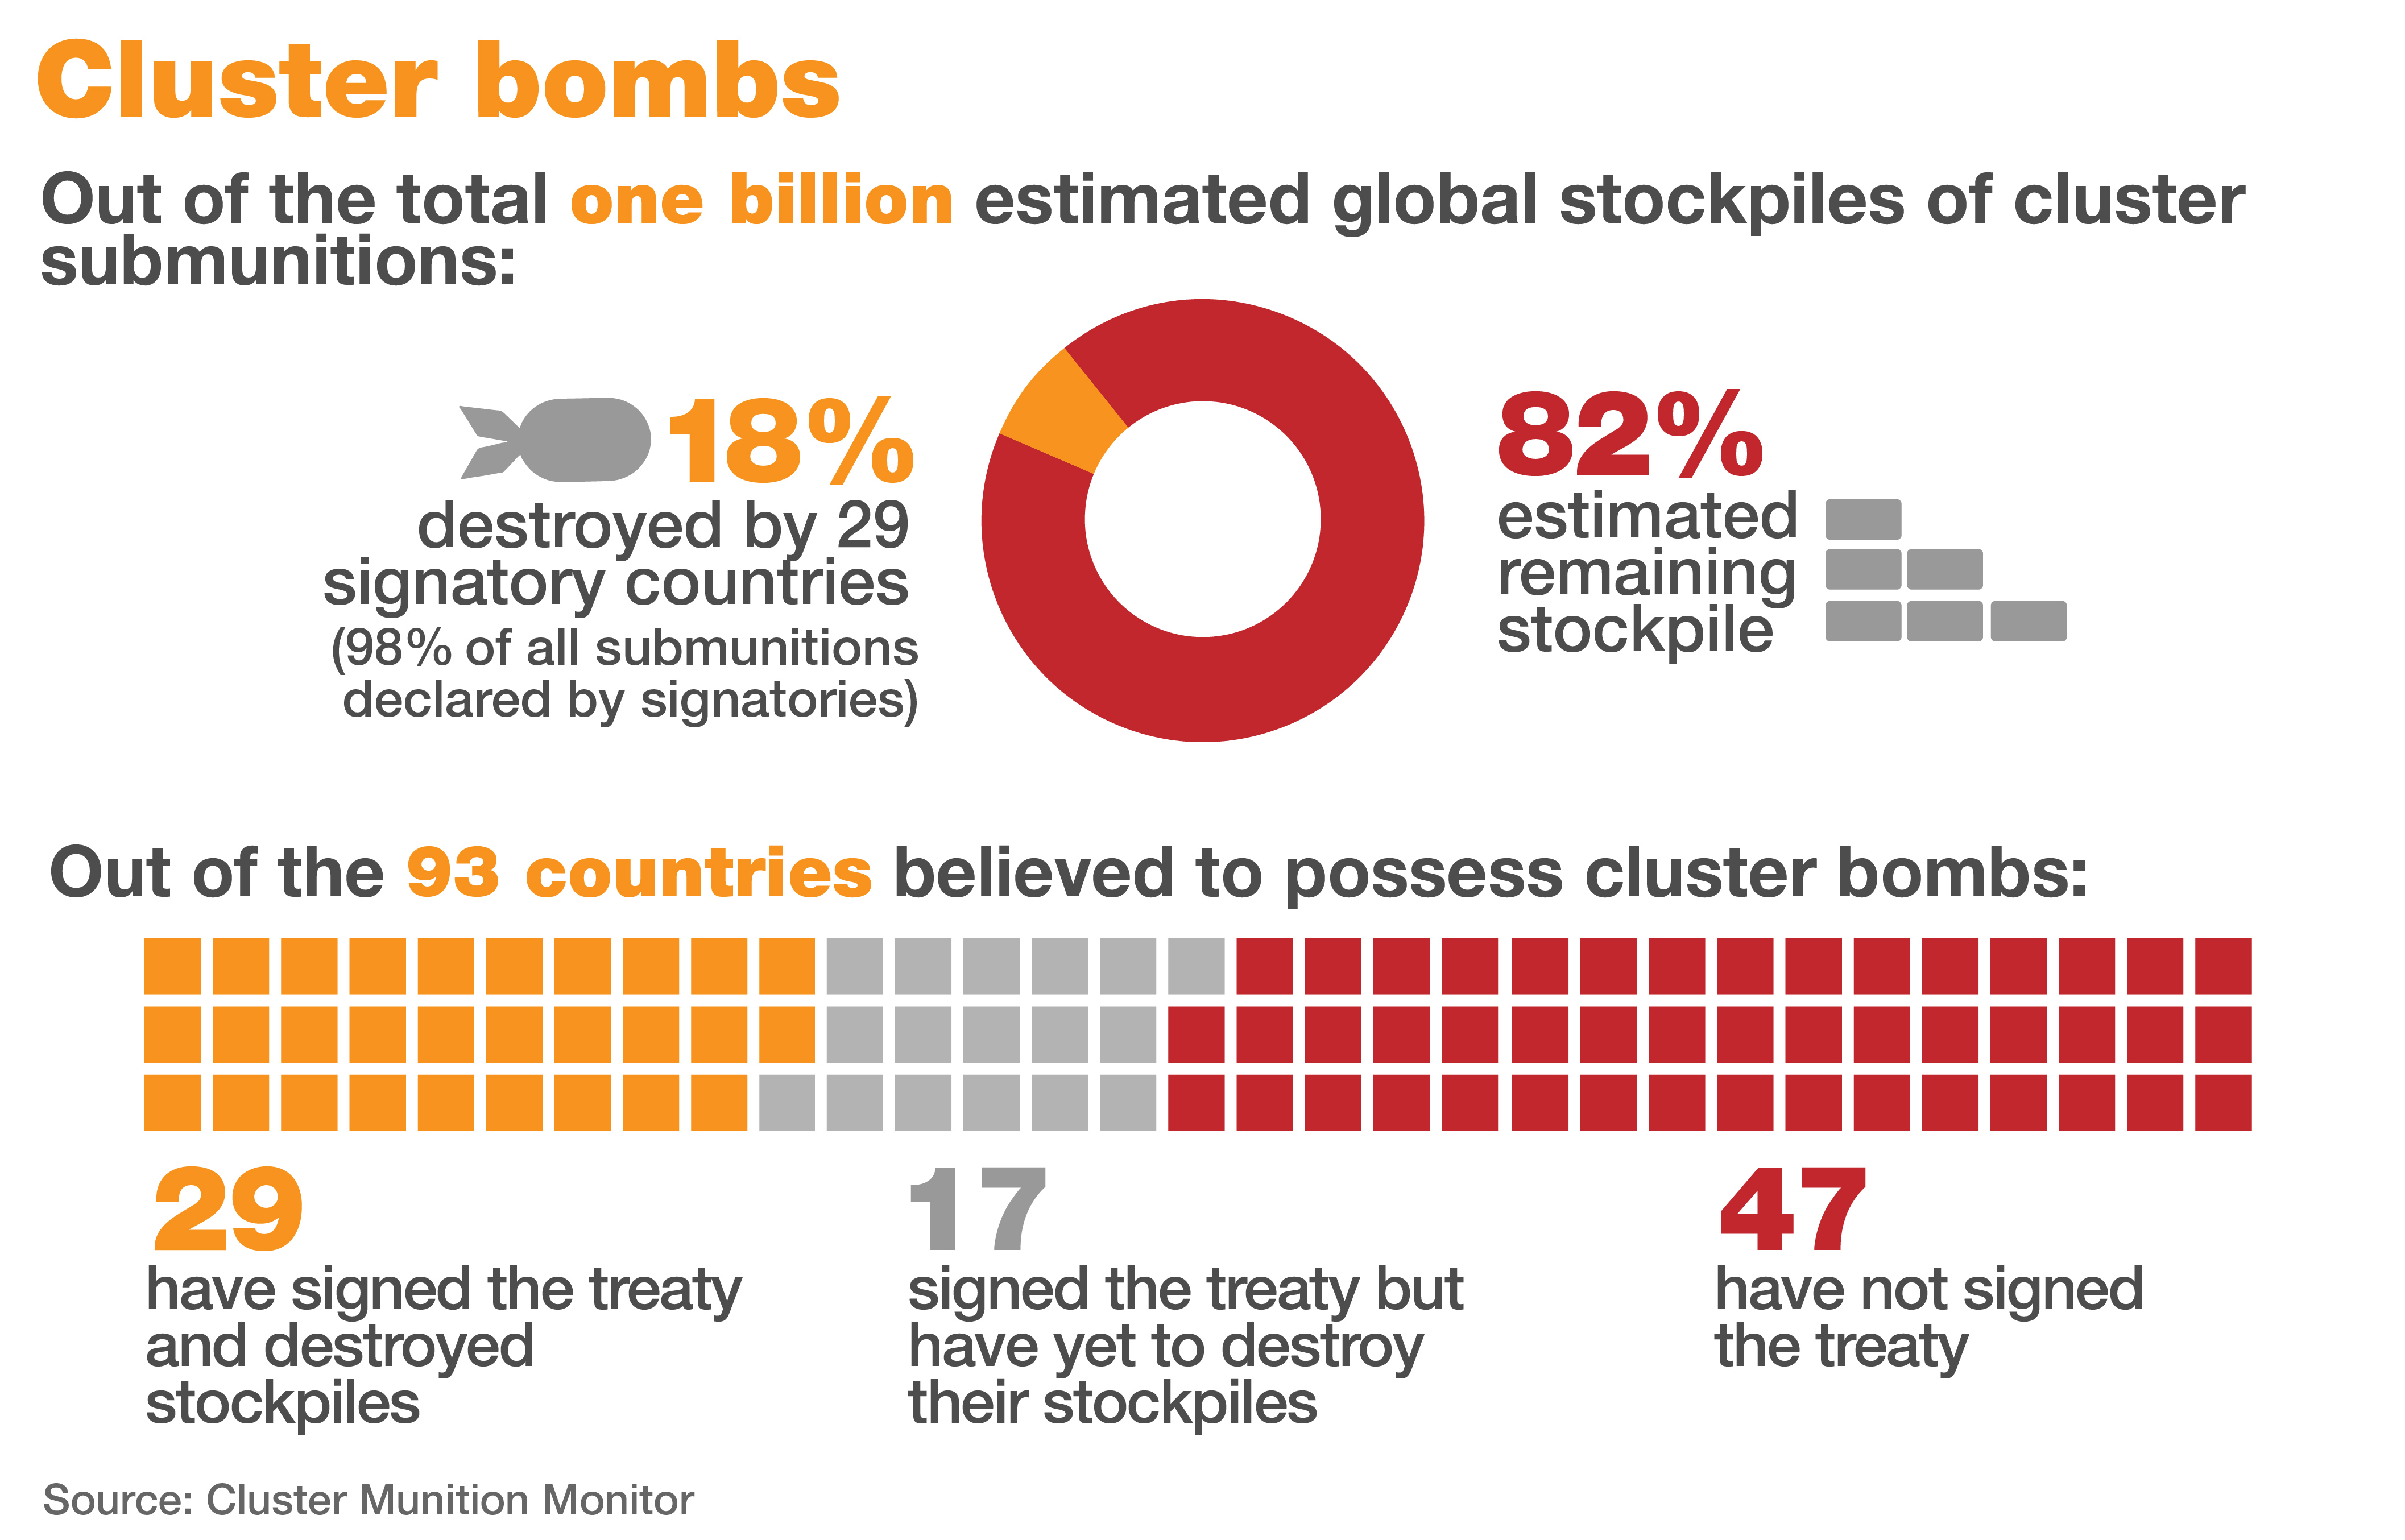 Cluster munition bombs